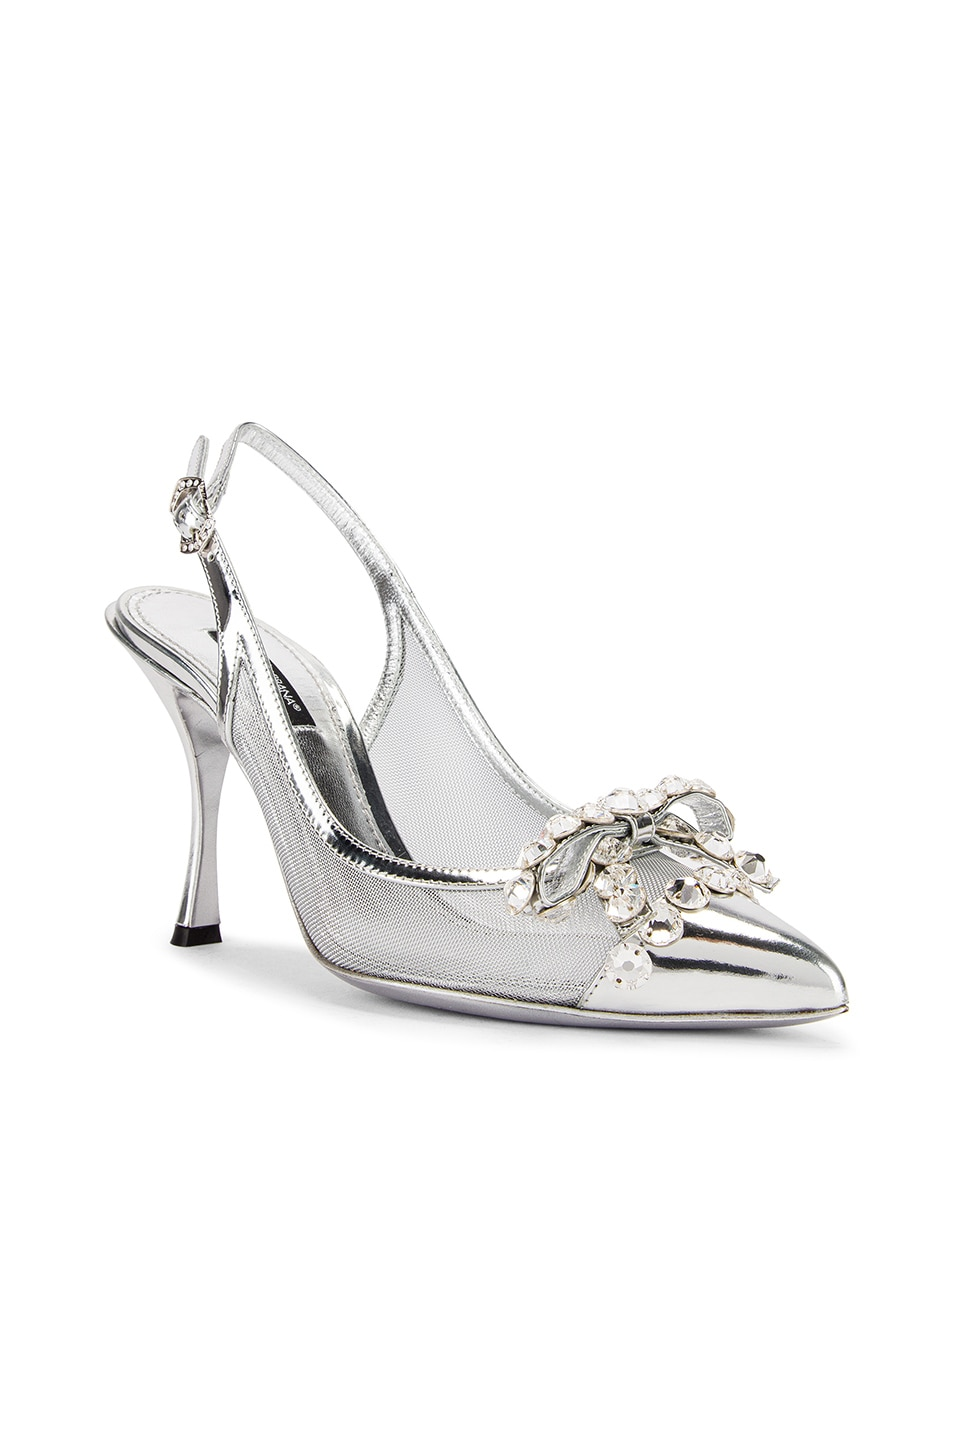 Image 2 of Dolce & Gabbana Bow Slingback Heels in Silver